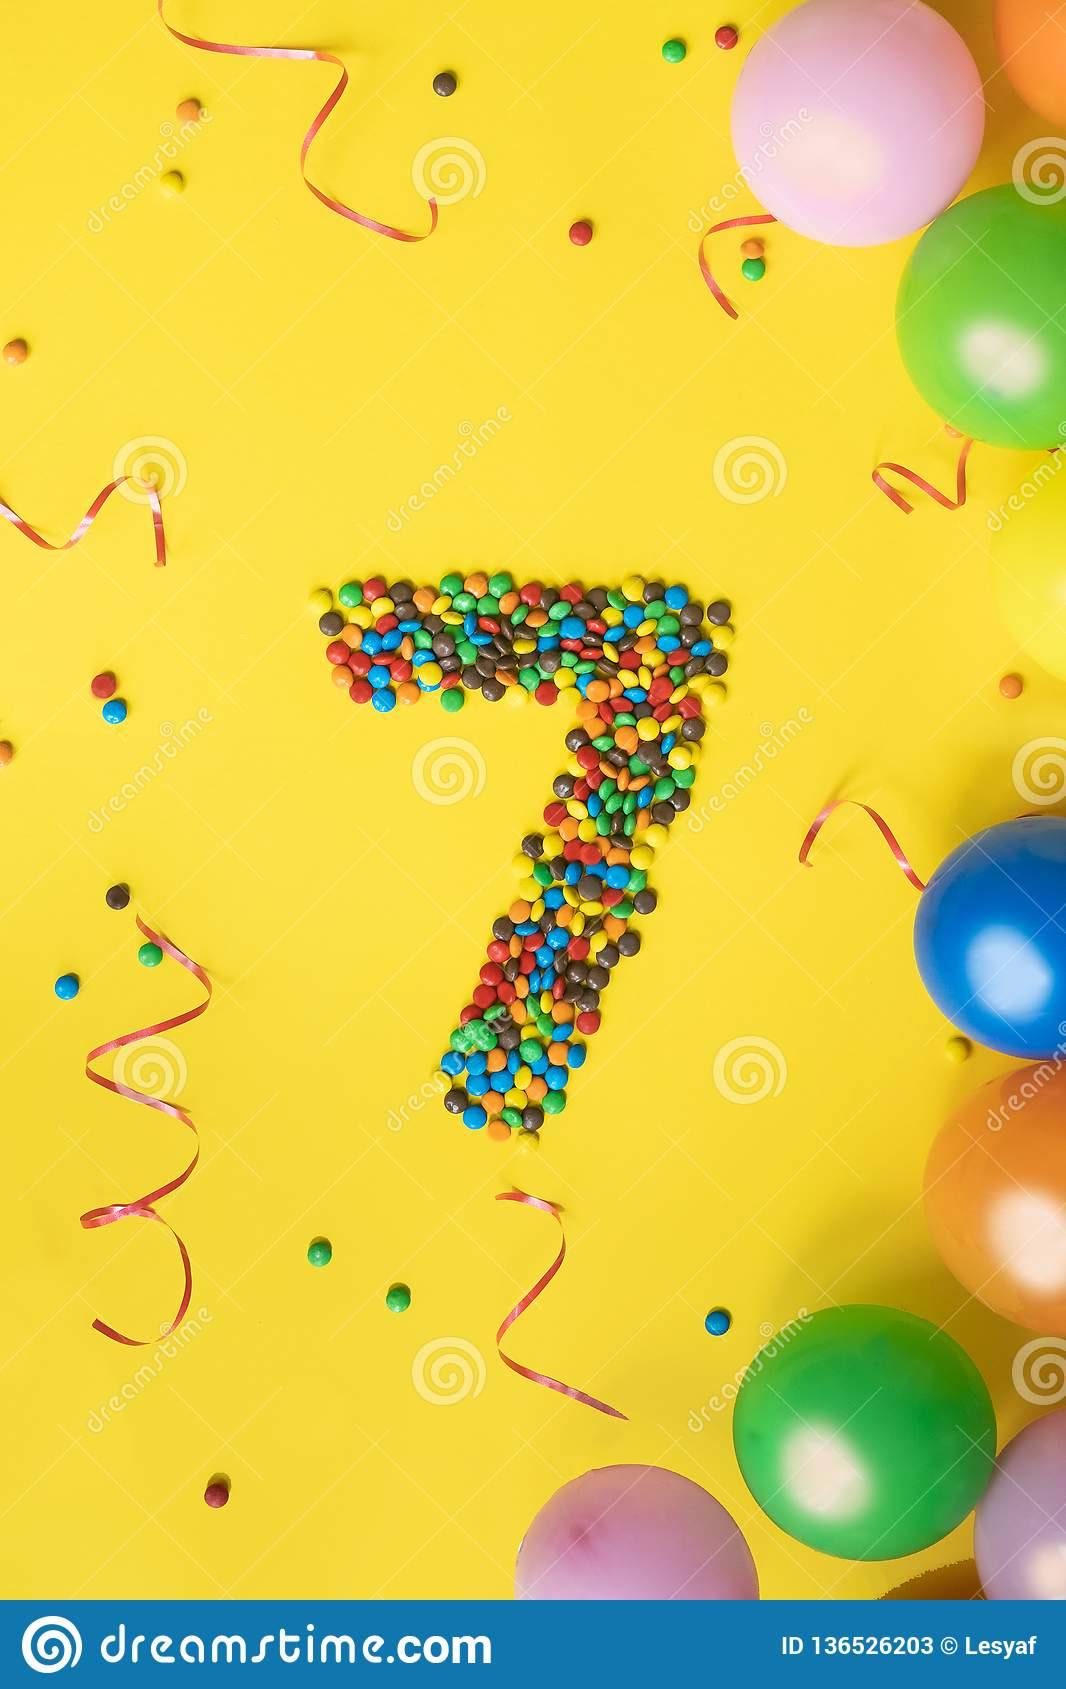 Candies Number 7 With Colorful Balloons On Yellow Background Concept For Birthdays